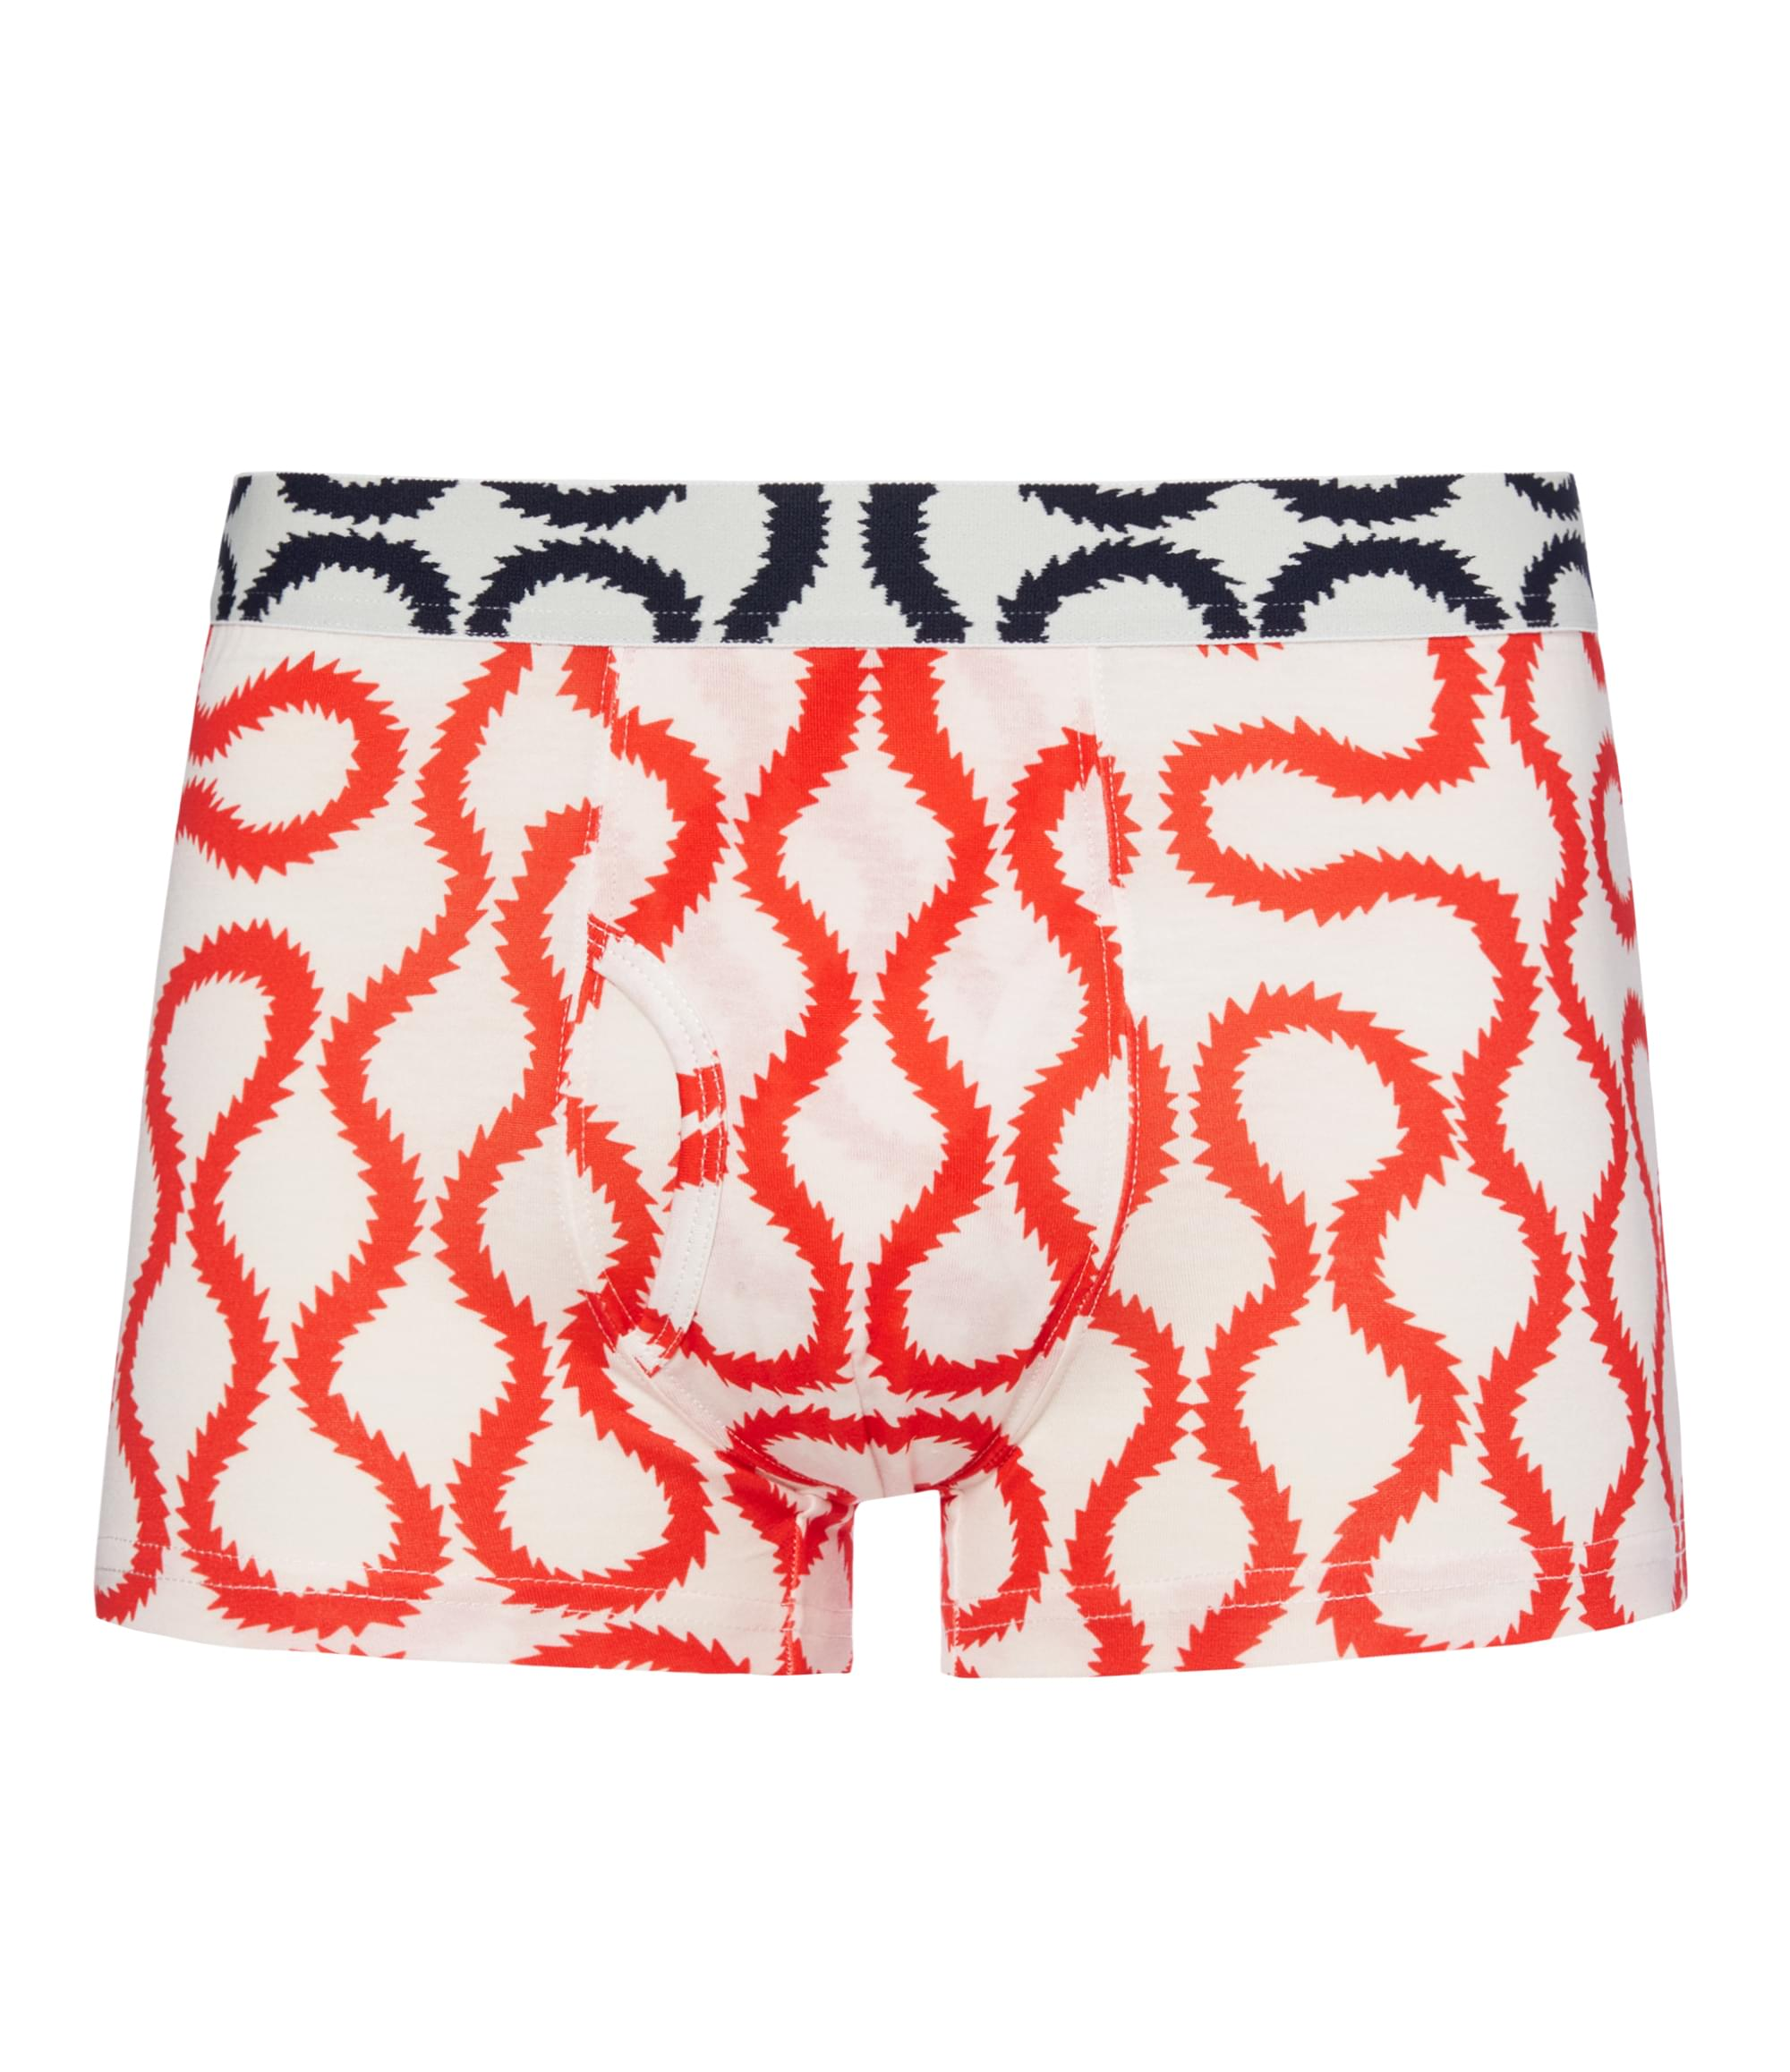 Vivienne Westwood Red Squiggle Boxer Shorts